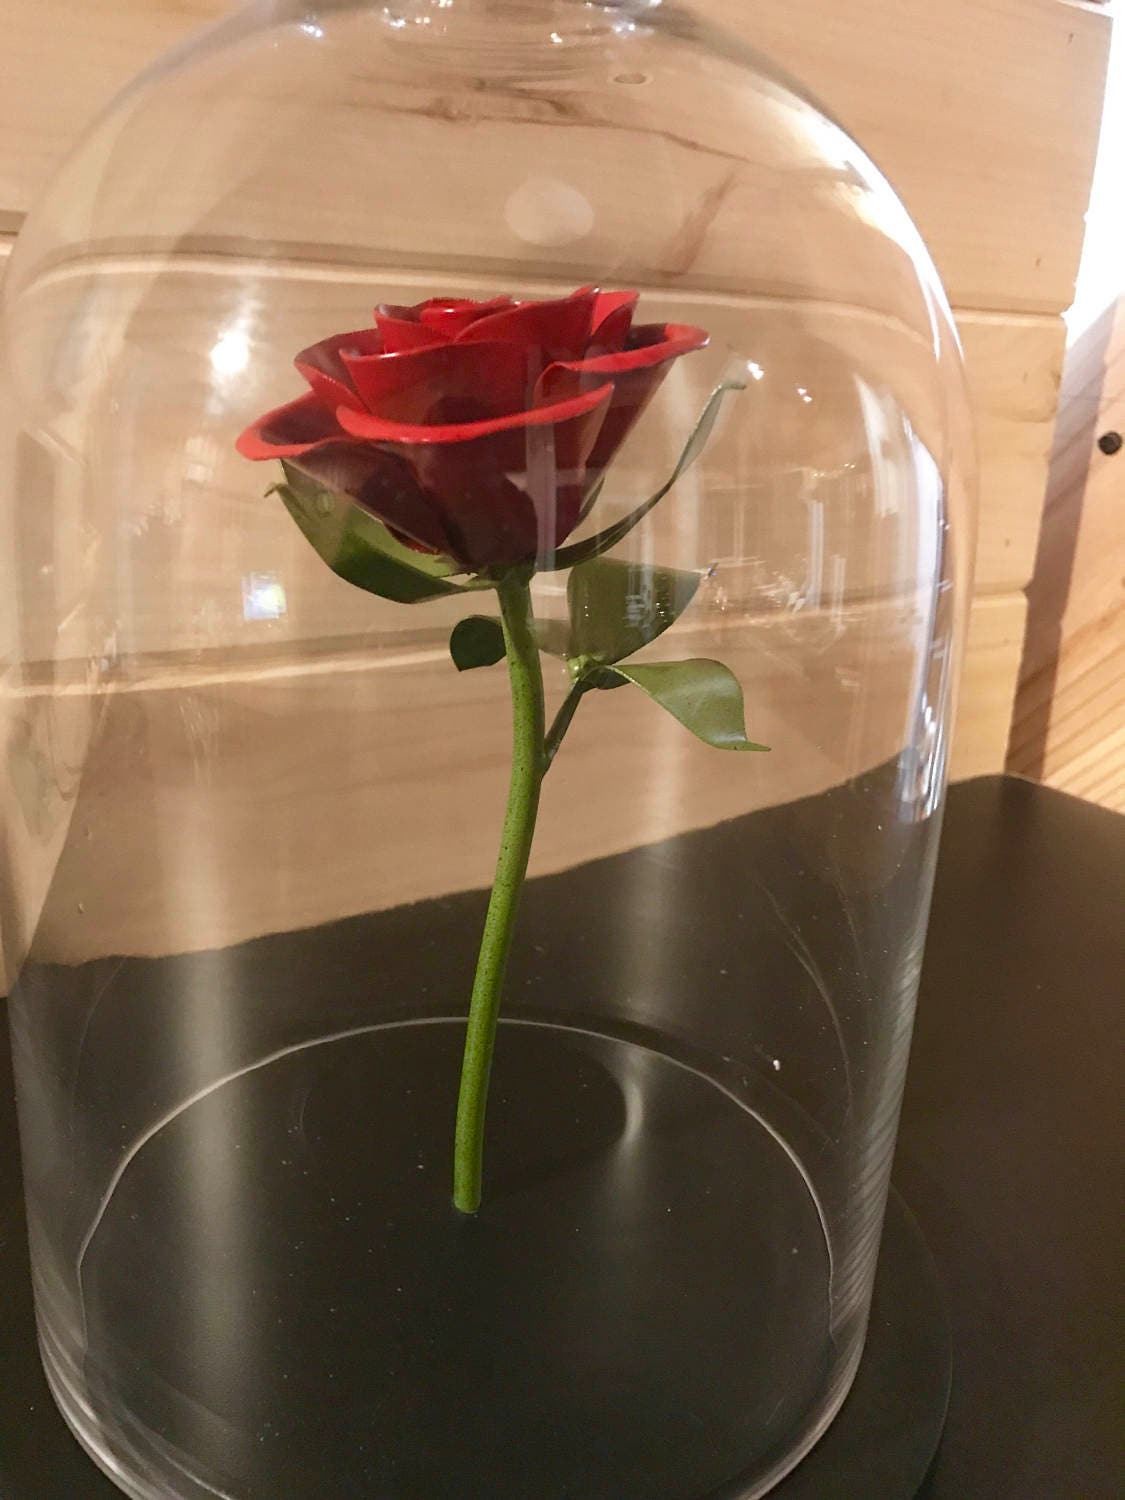 Enchanted metal rose sculpture beauty and the beast a tale as old gallery photo gallery photo gallery photo gallery photo izmirmasajfo